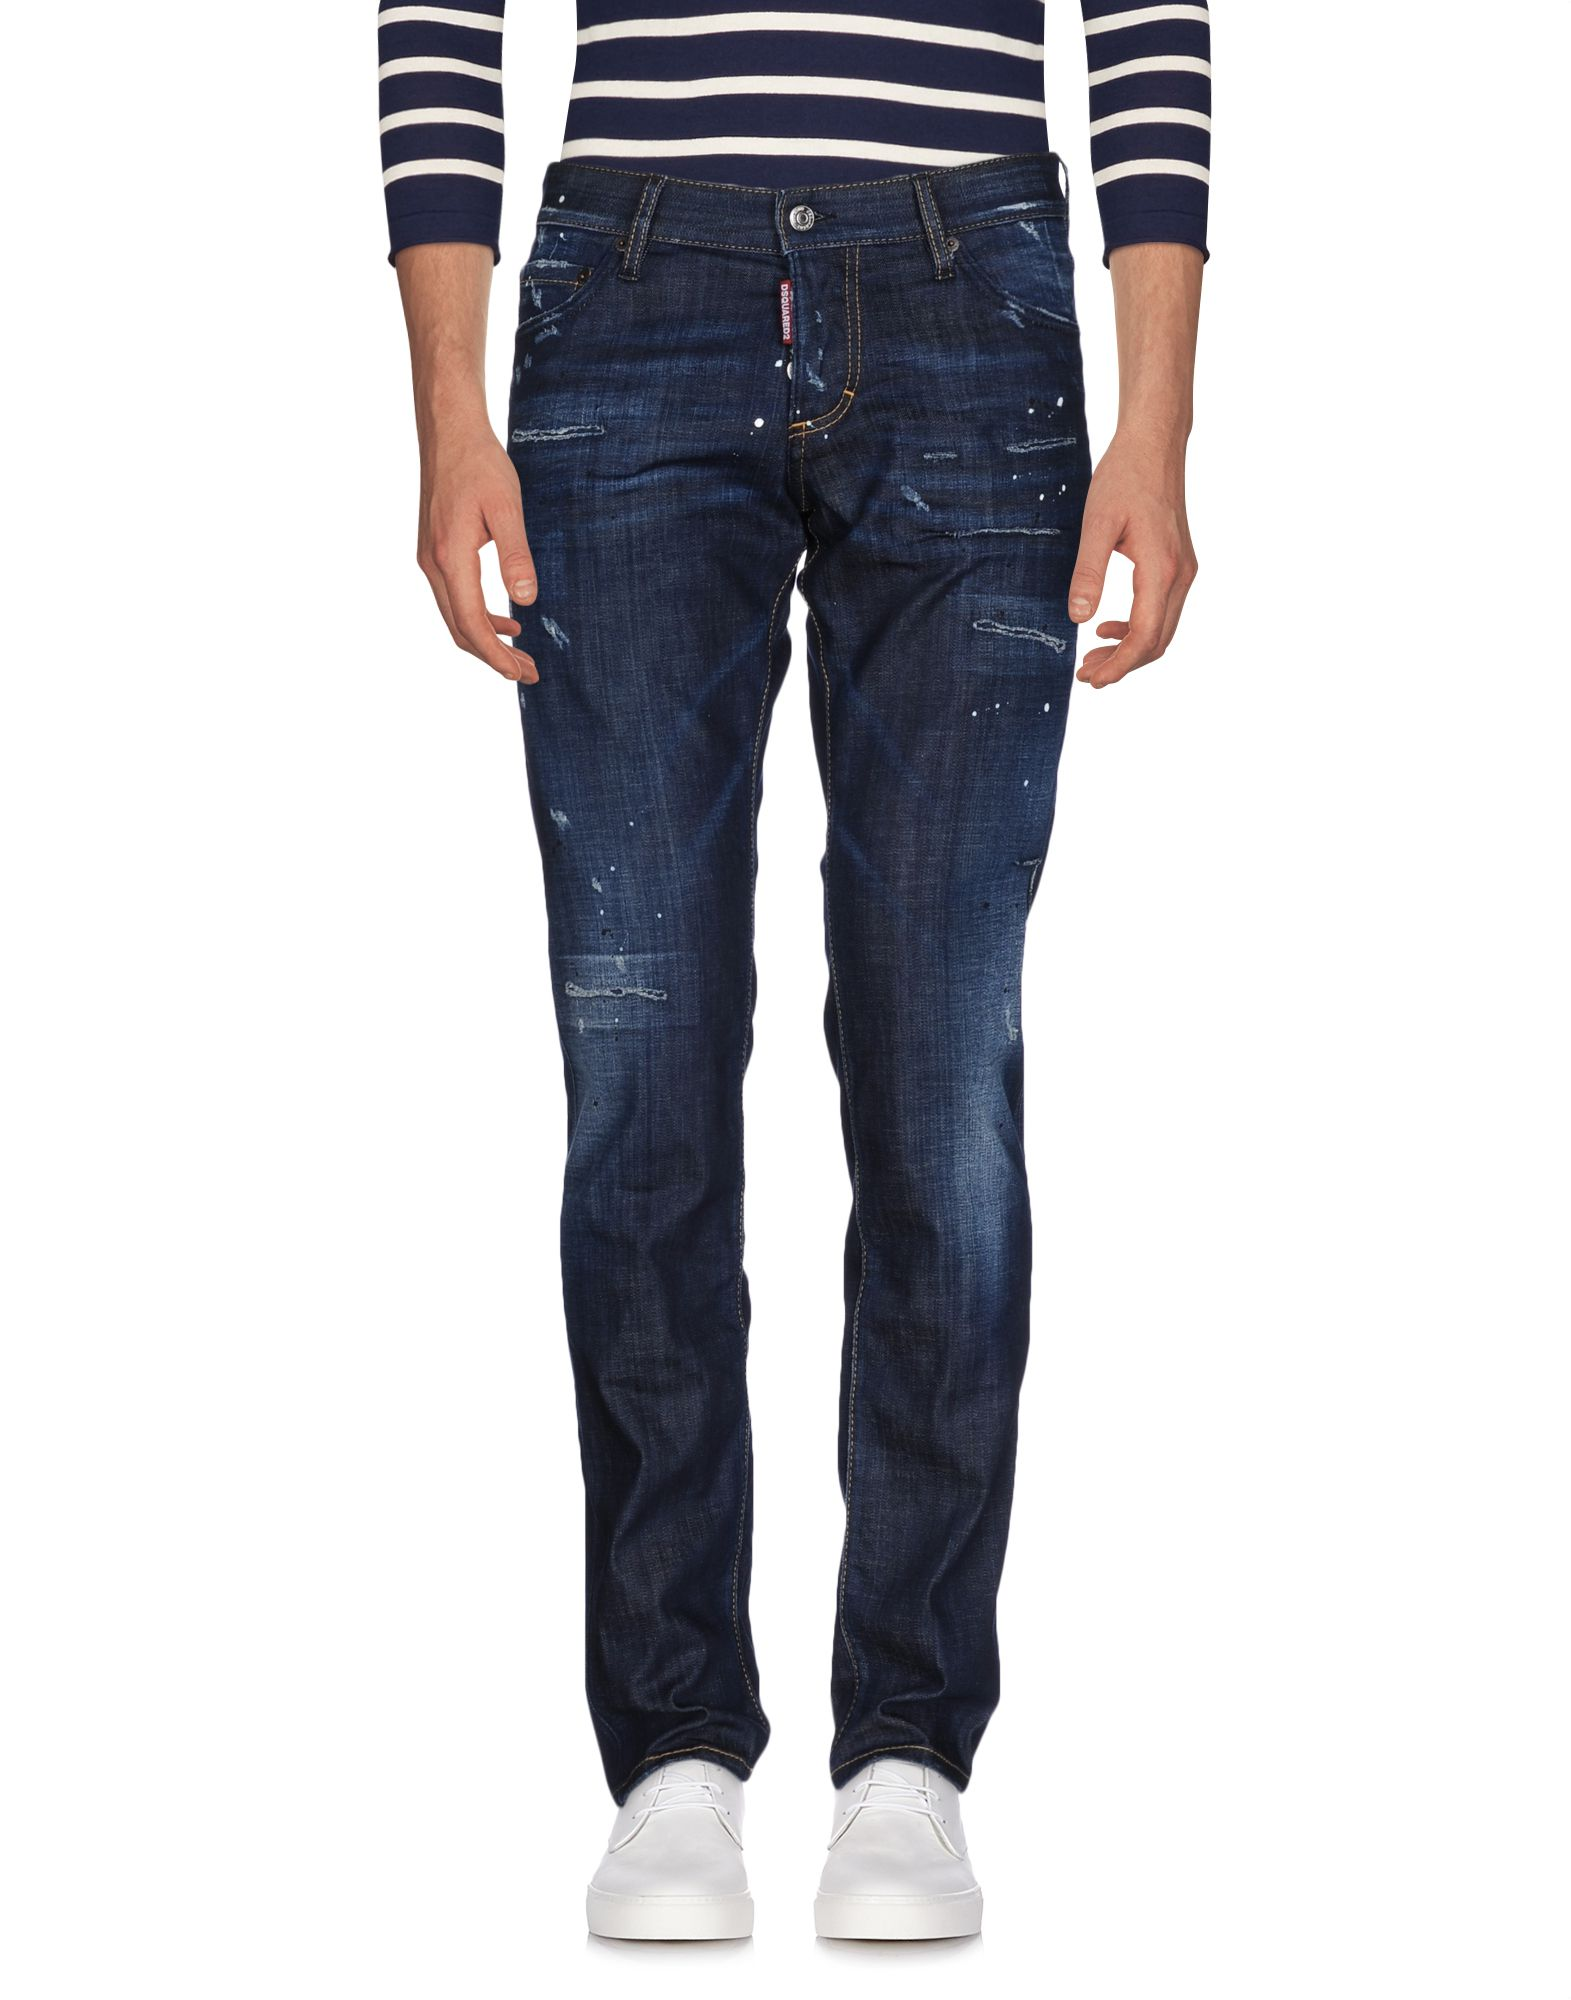 SOLD OUT         Pantaloni Jeans Dsquared2 Donna - Acquista online su